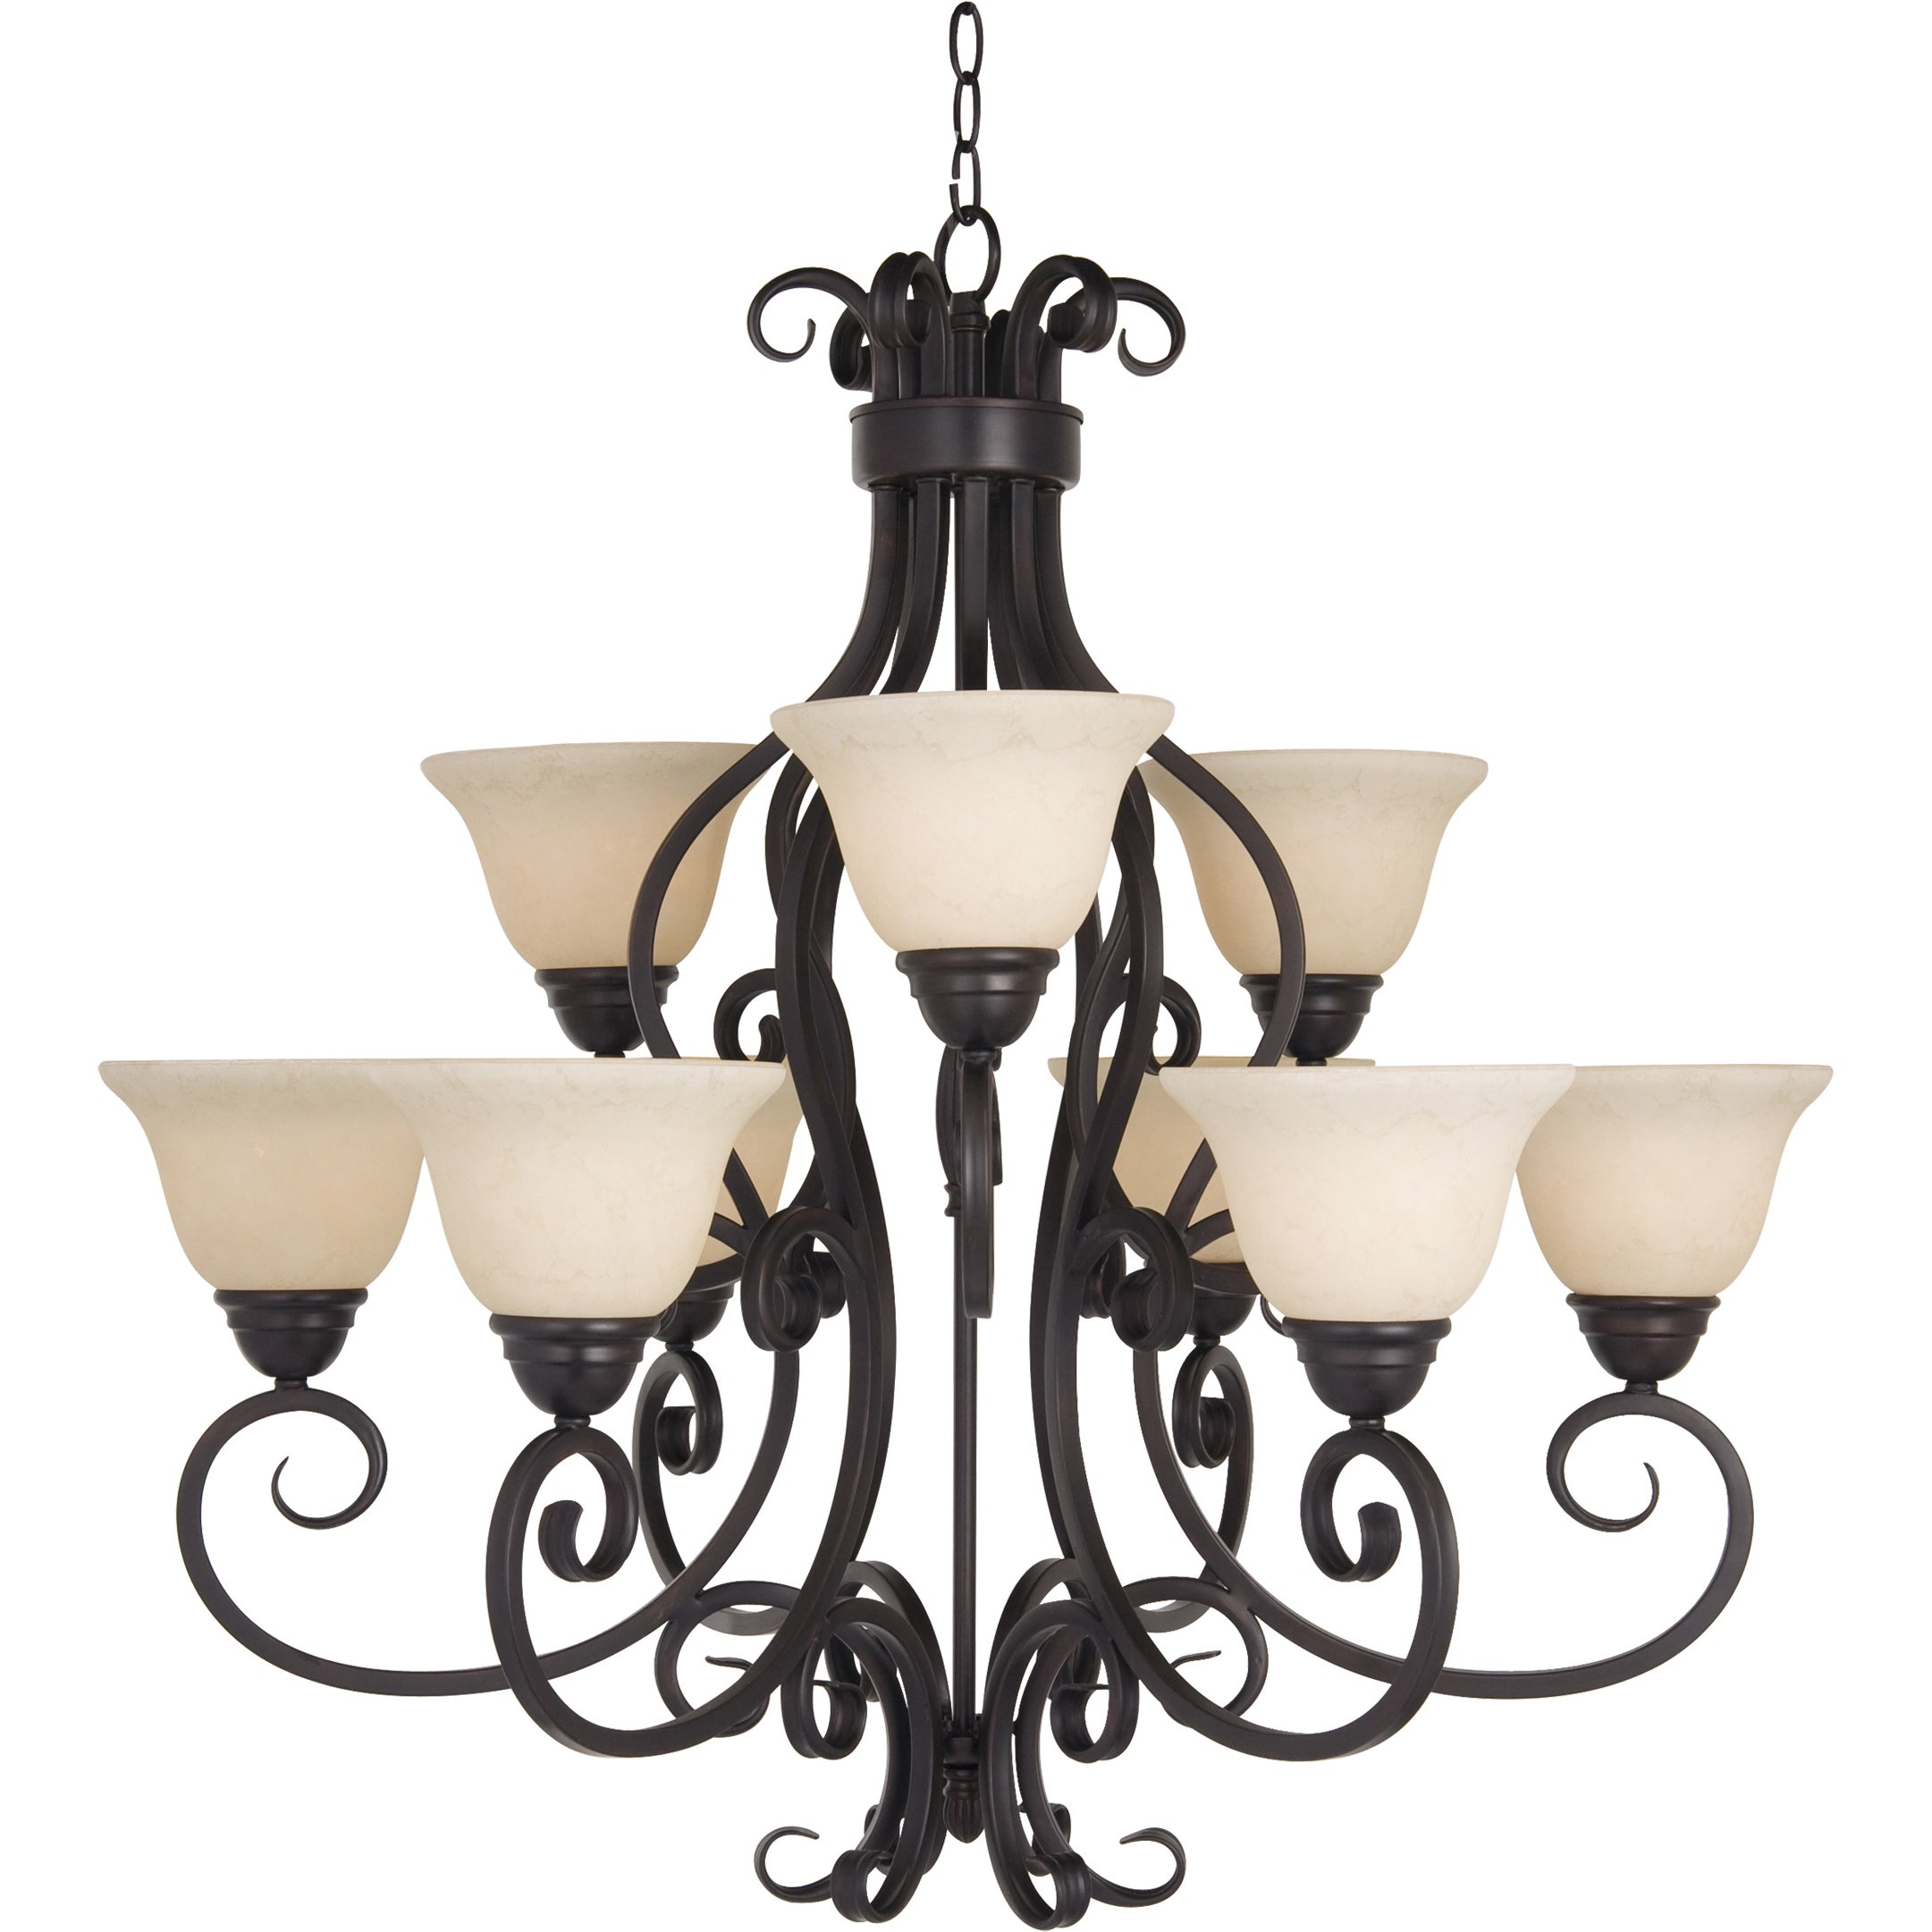 Maxim Manor 9 light Oil Rubbed Bronze Chandelier Free Shipping